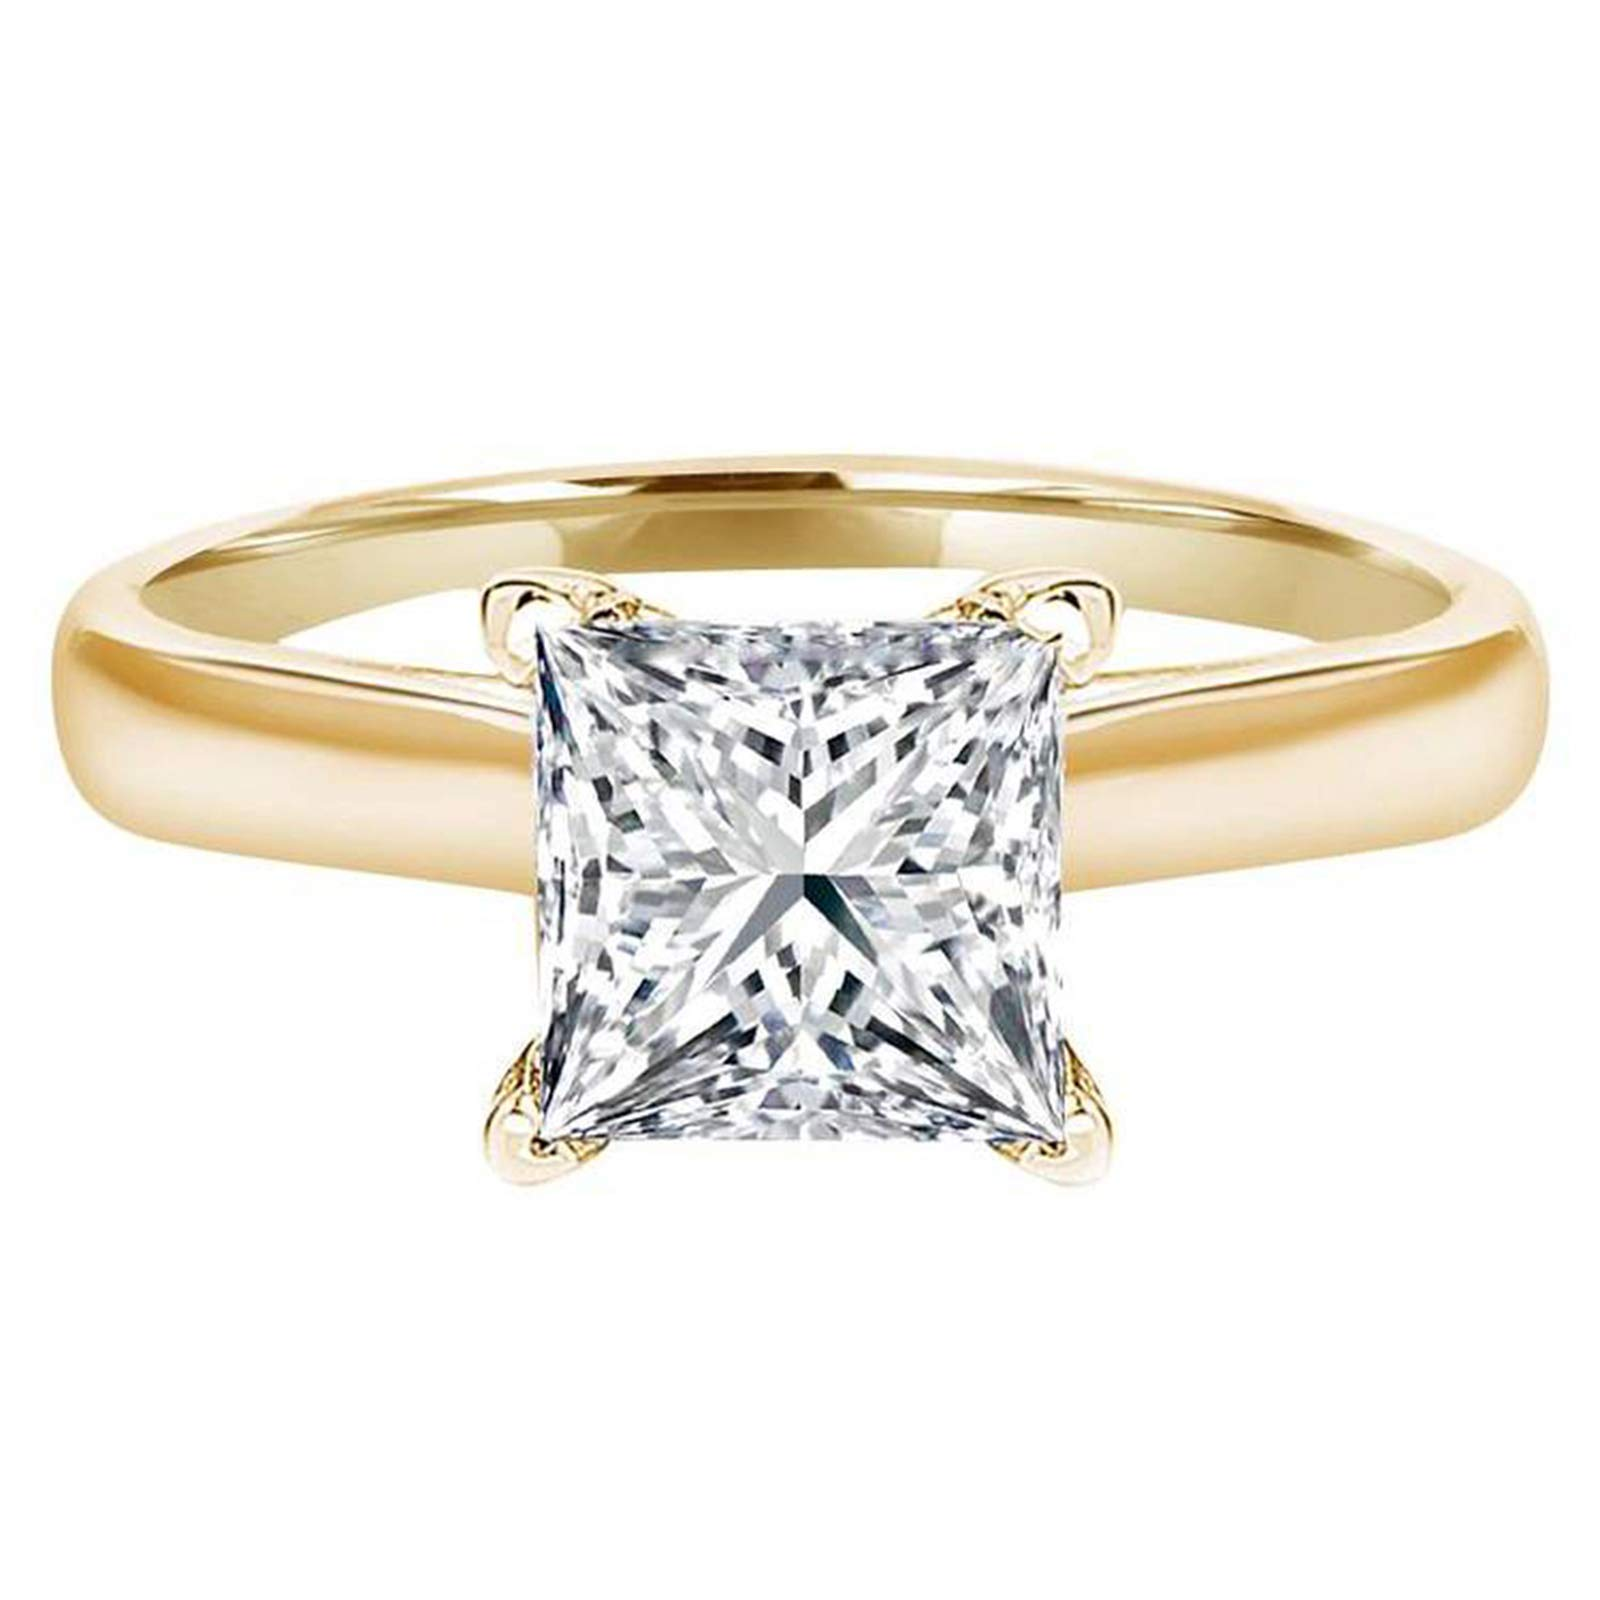 0.4ct Brilliant Princess Cut Solitaire Highest Quality Lab Created White Sapphire Ideal VVS1 D 4-Prong Engagement Wedding Bridal Promise Anniversary Ring Solid Real 14k Yellow Gold for Women